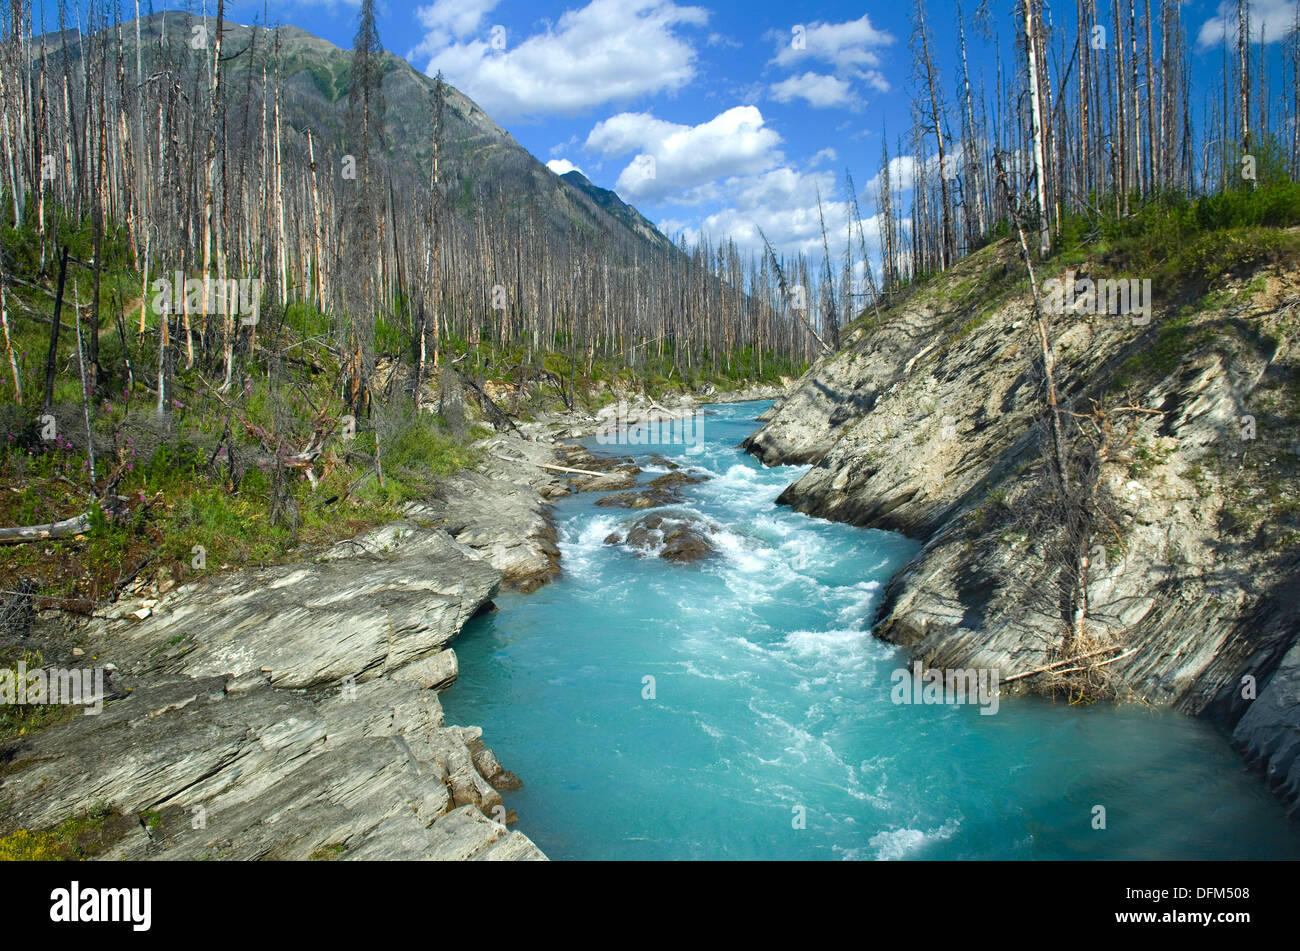 Vermilion river kootenay national park british columbia canada vermilion river kootenay national park british columbia canada sciox Image collections